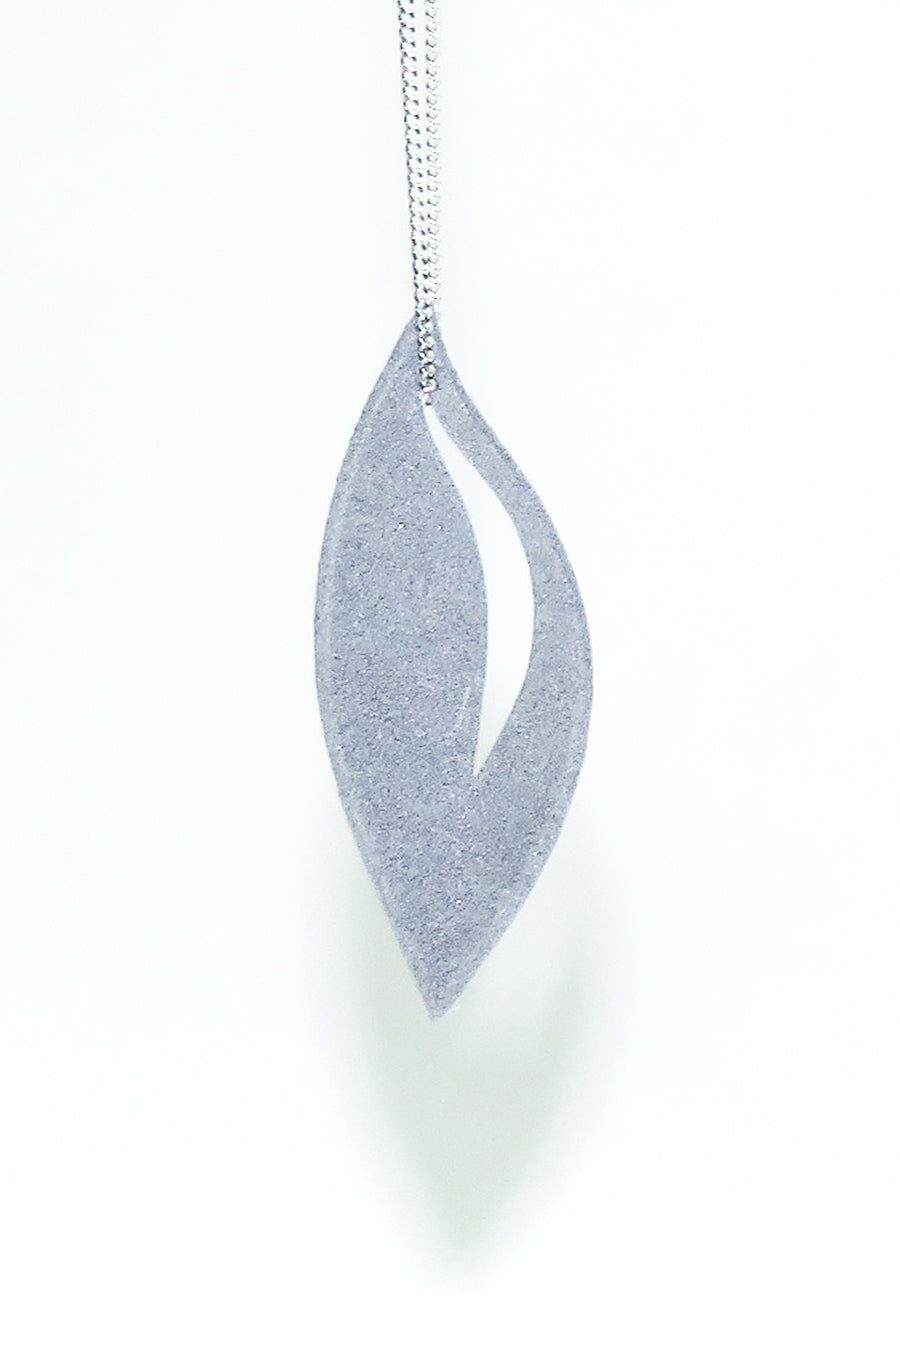 3D Printed Olive Slate Grey Pendant on a Sterling Silver Chain